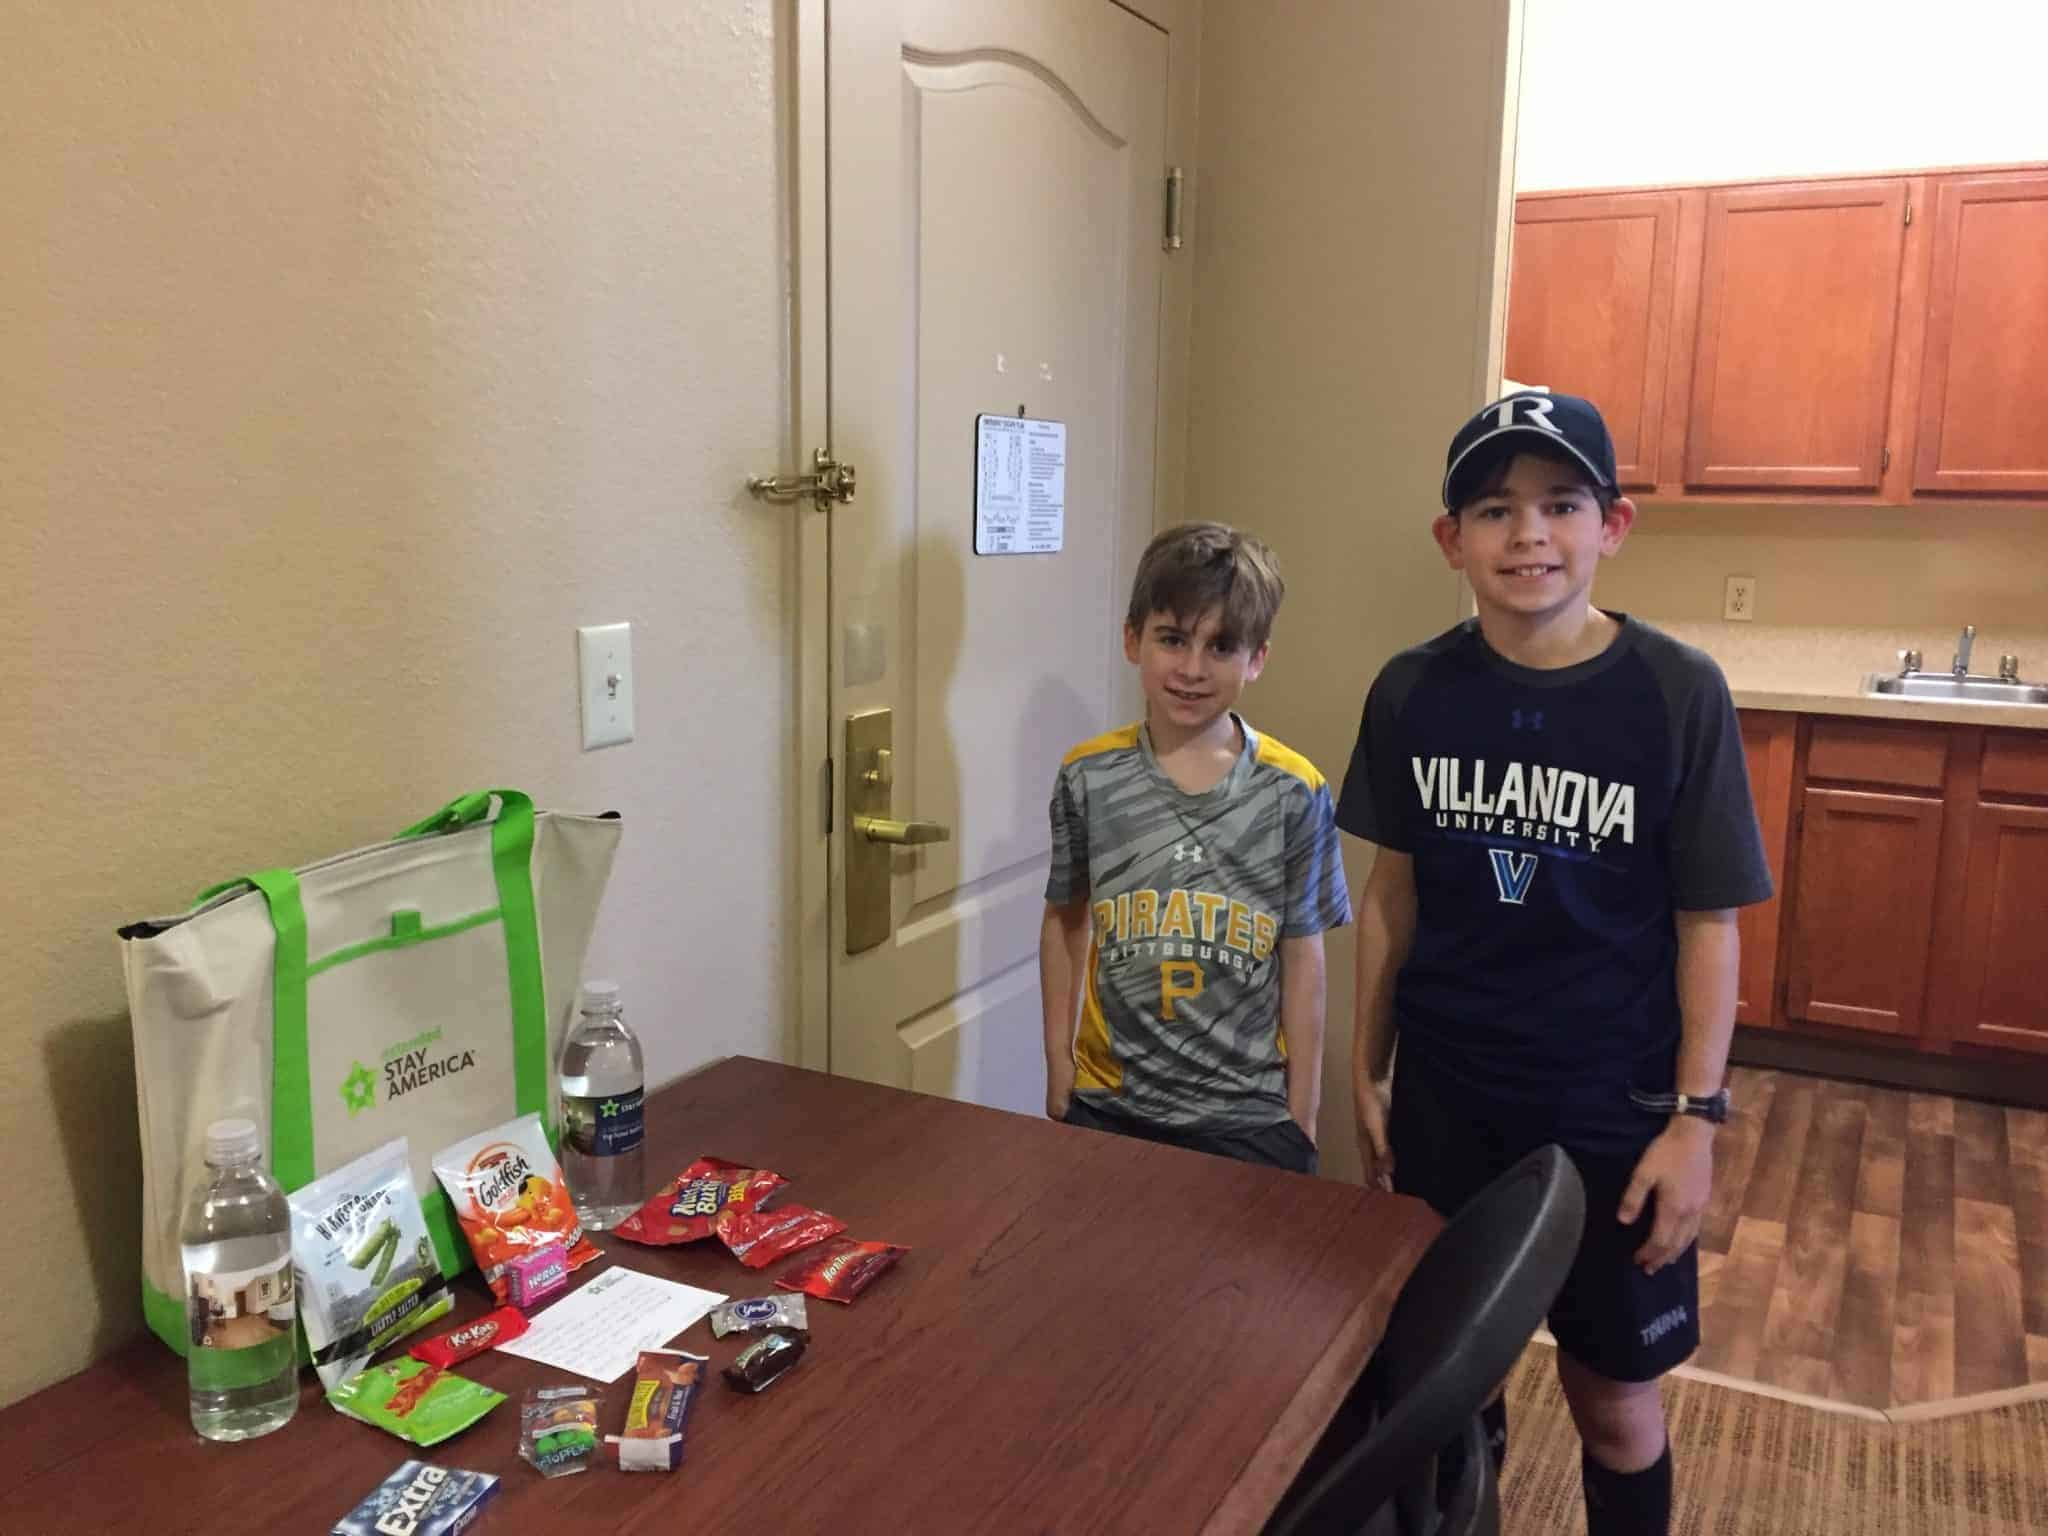 welcome-to-extended-stay-america-dallas-frankford-road-review-5862863